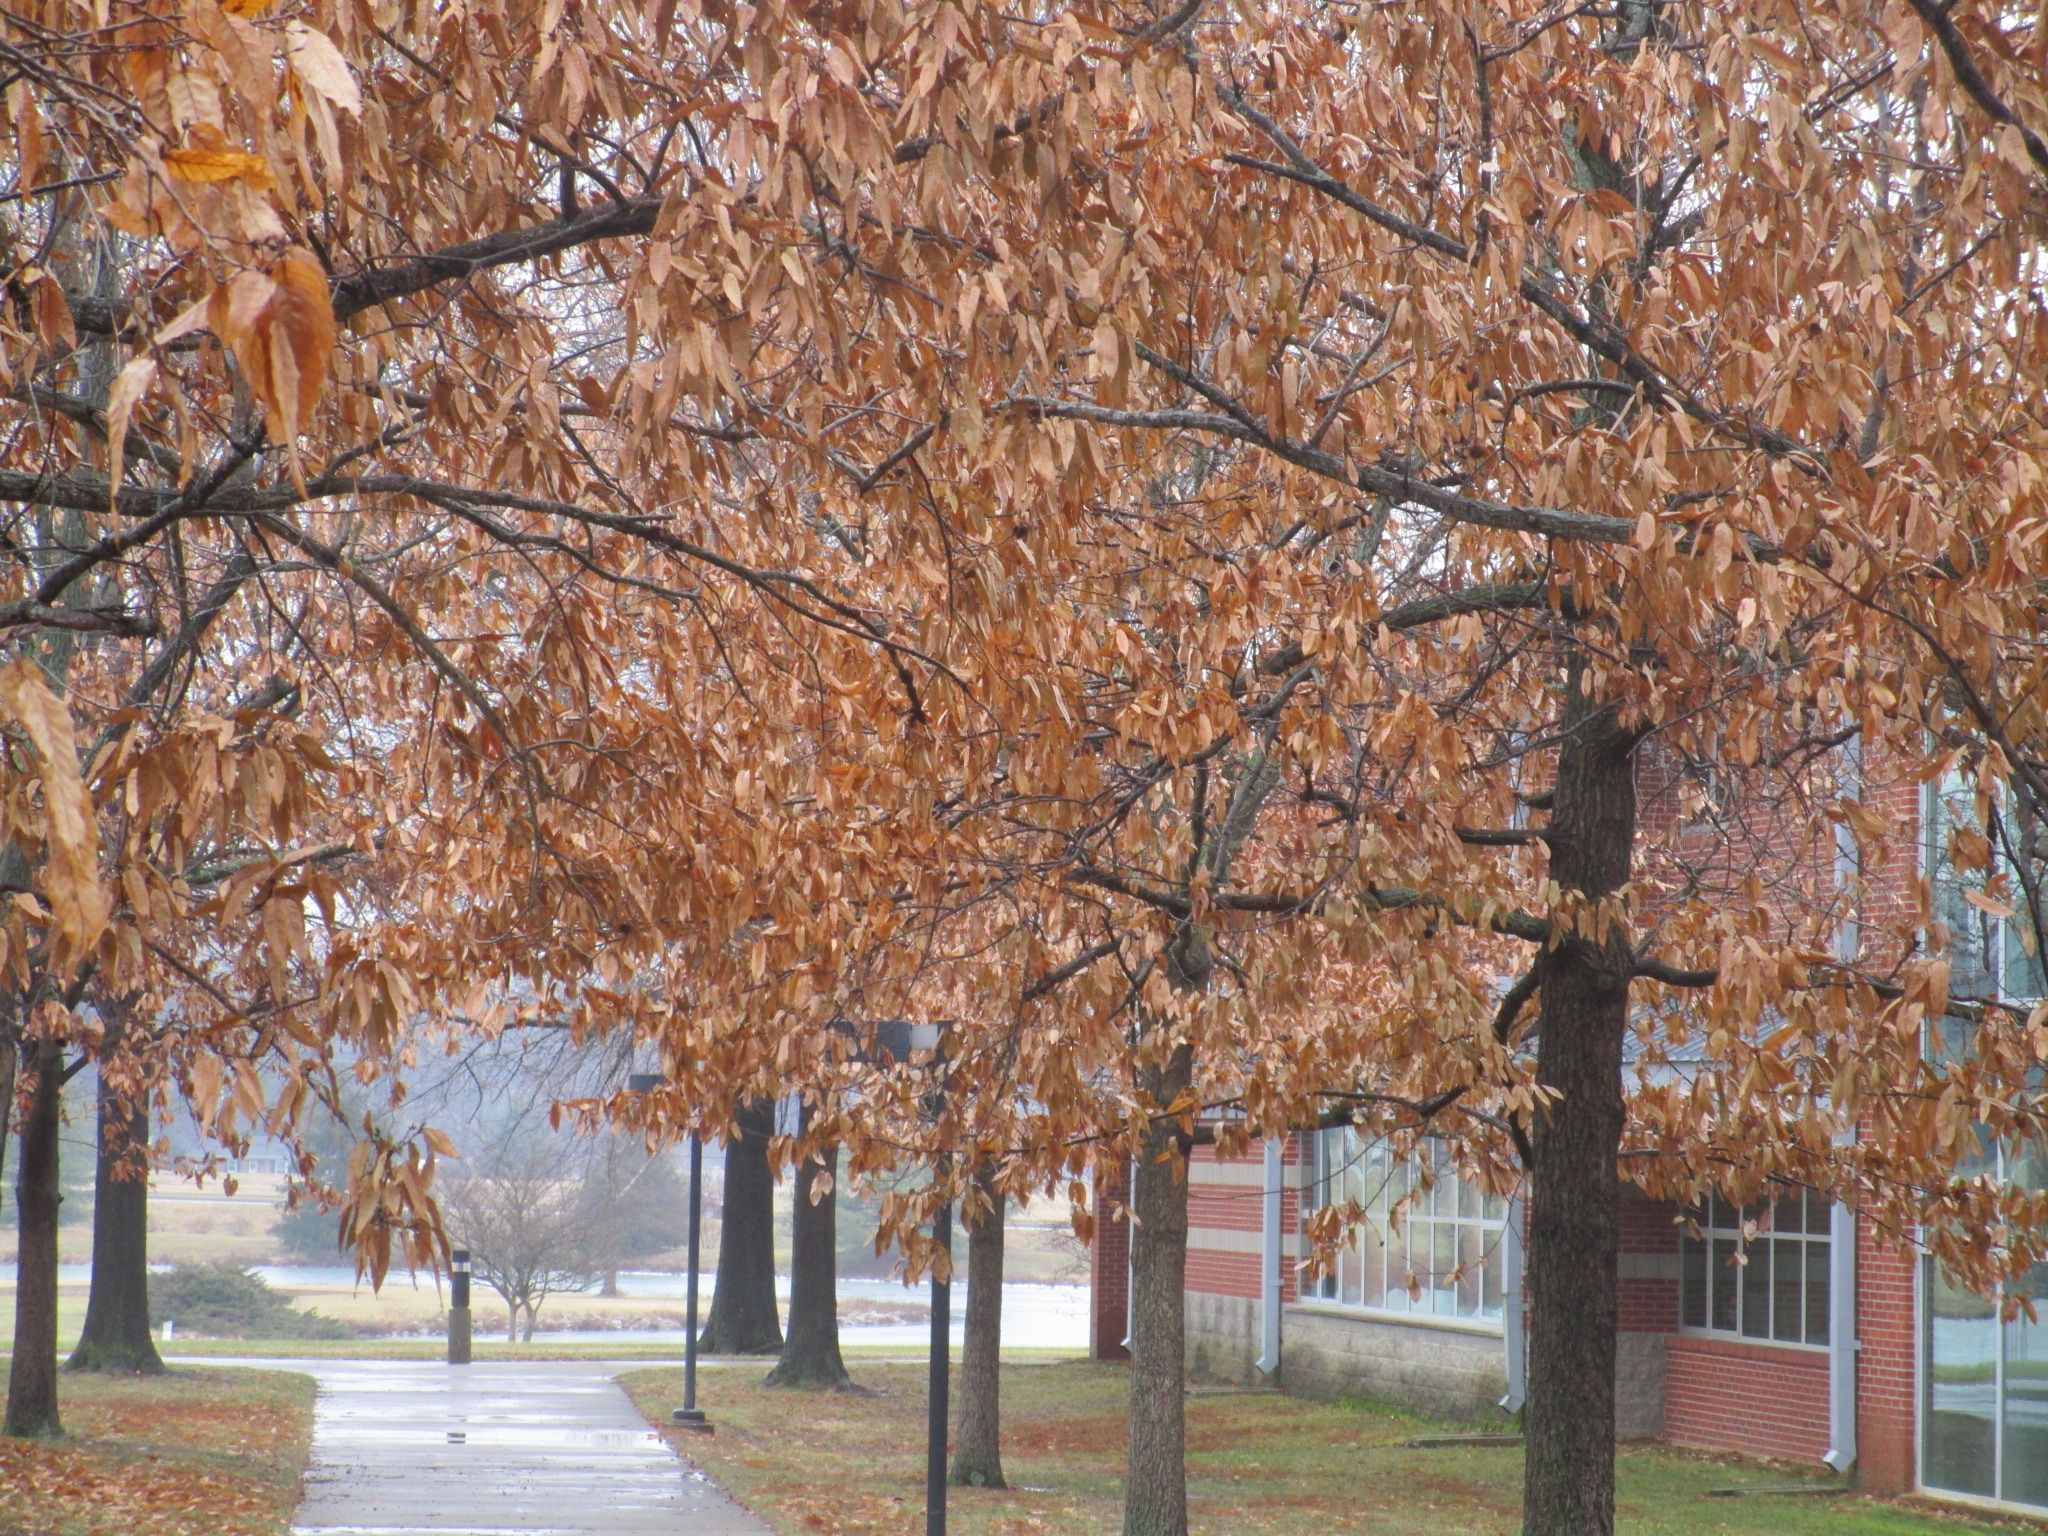 Although January is the midst of winter, it does not technically mean all the fall foliage is gone.  This remarkable example of January autumn foliage is located in Owensboro Community and Technical College, the oasis of fall color for December and January.  January 12, 2015